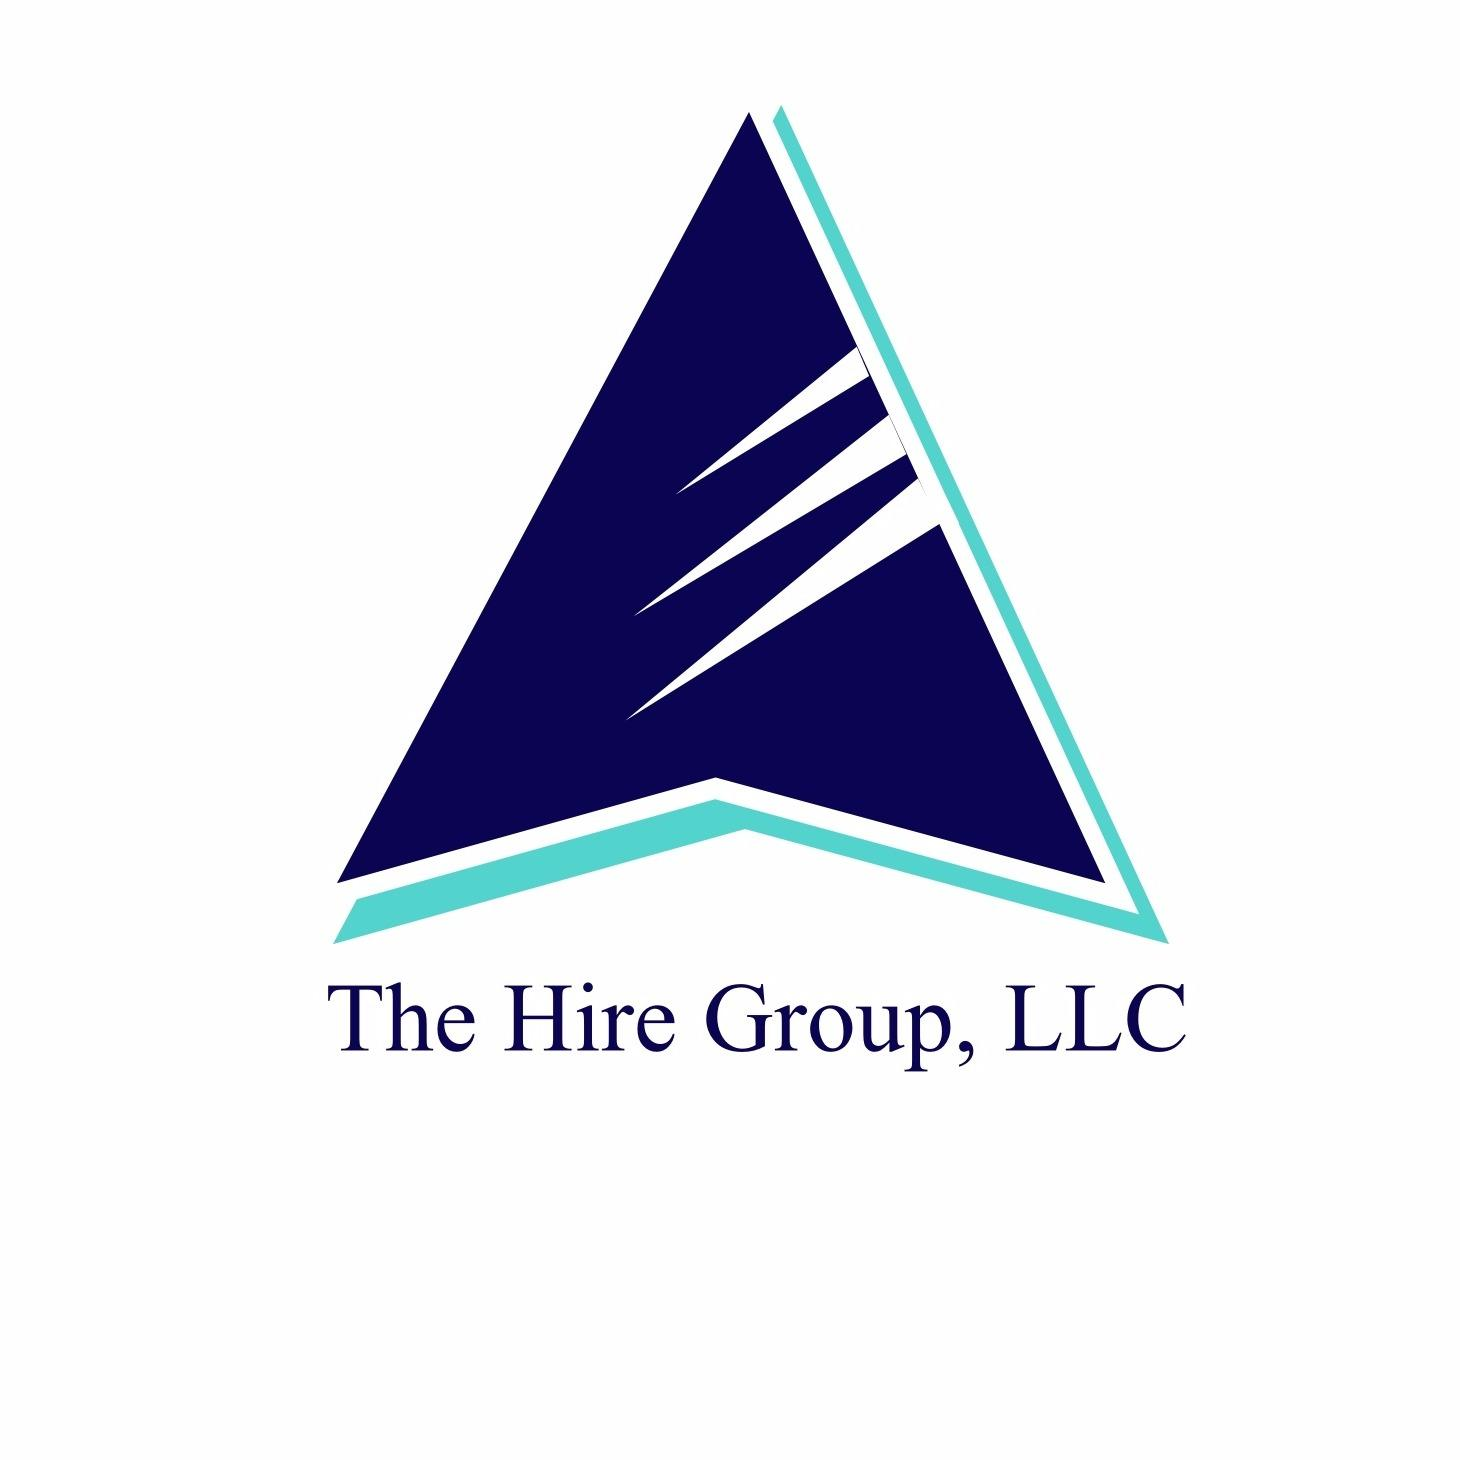 The Hire Group, LLC